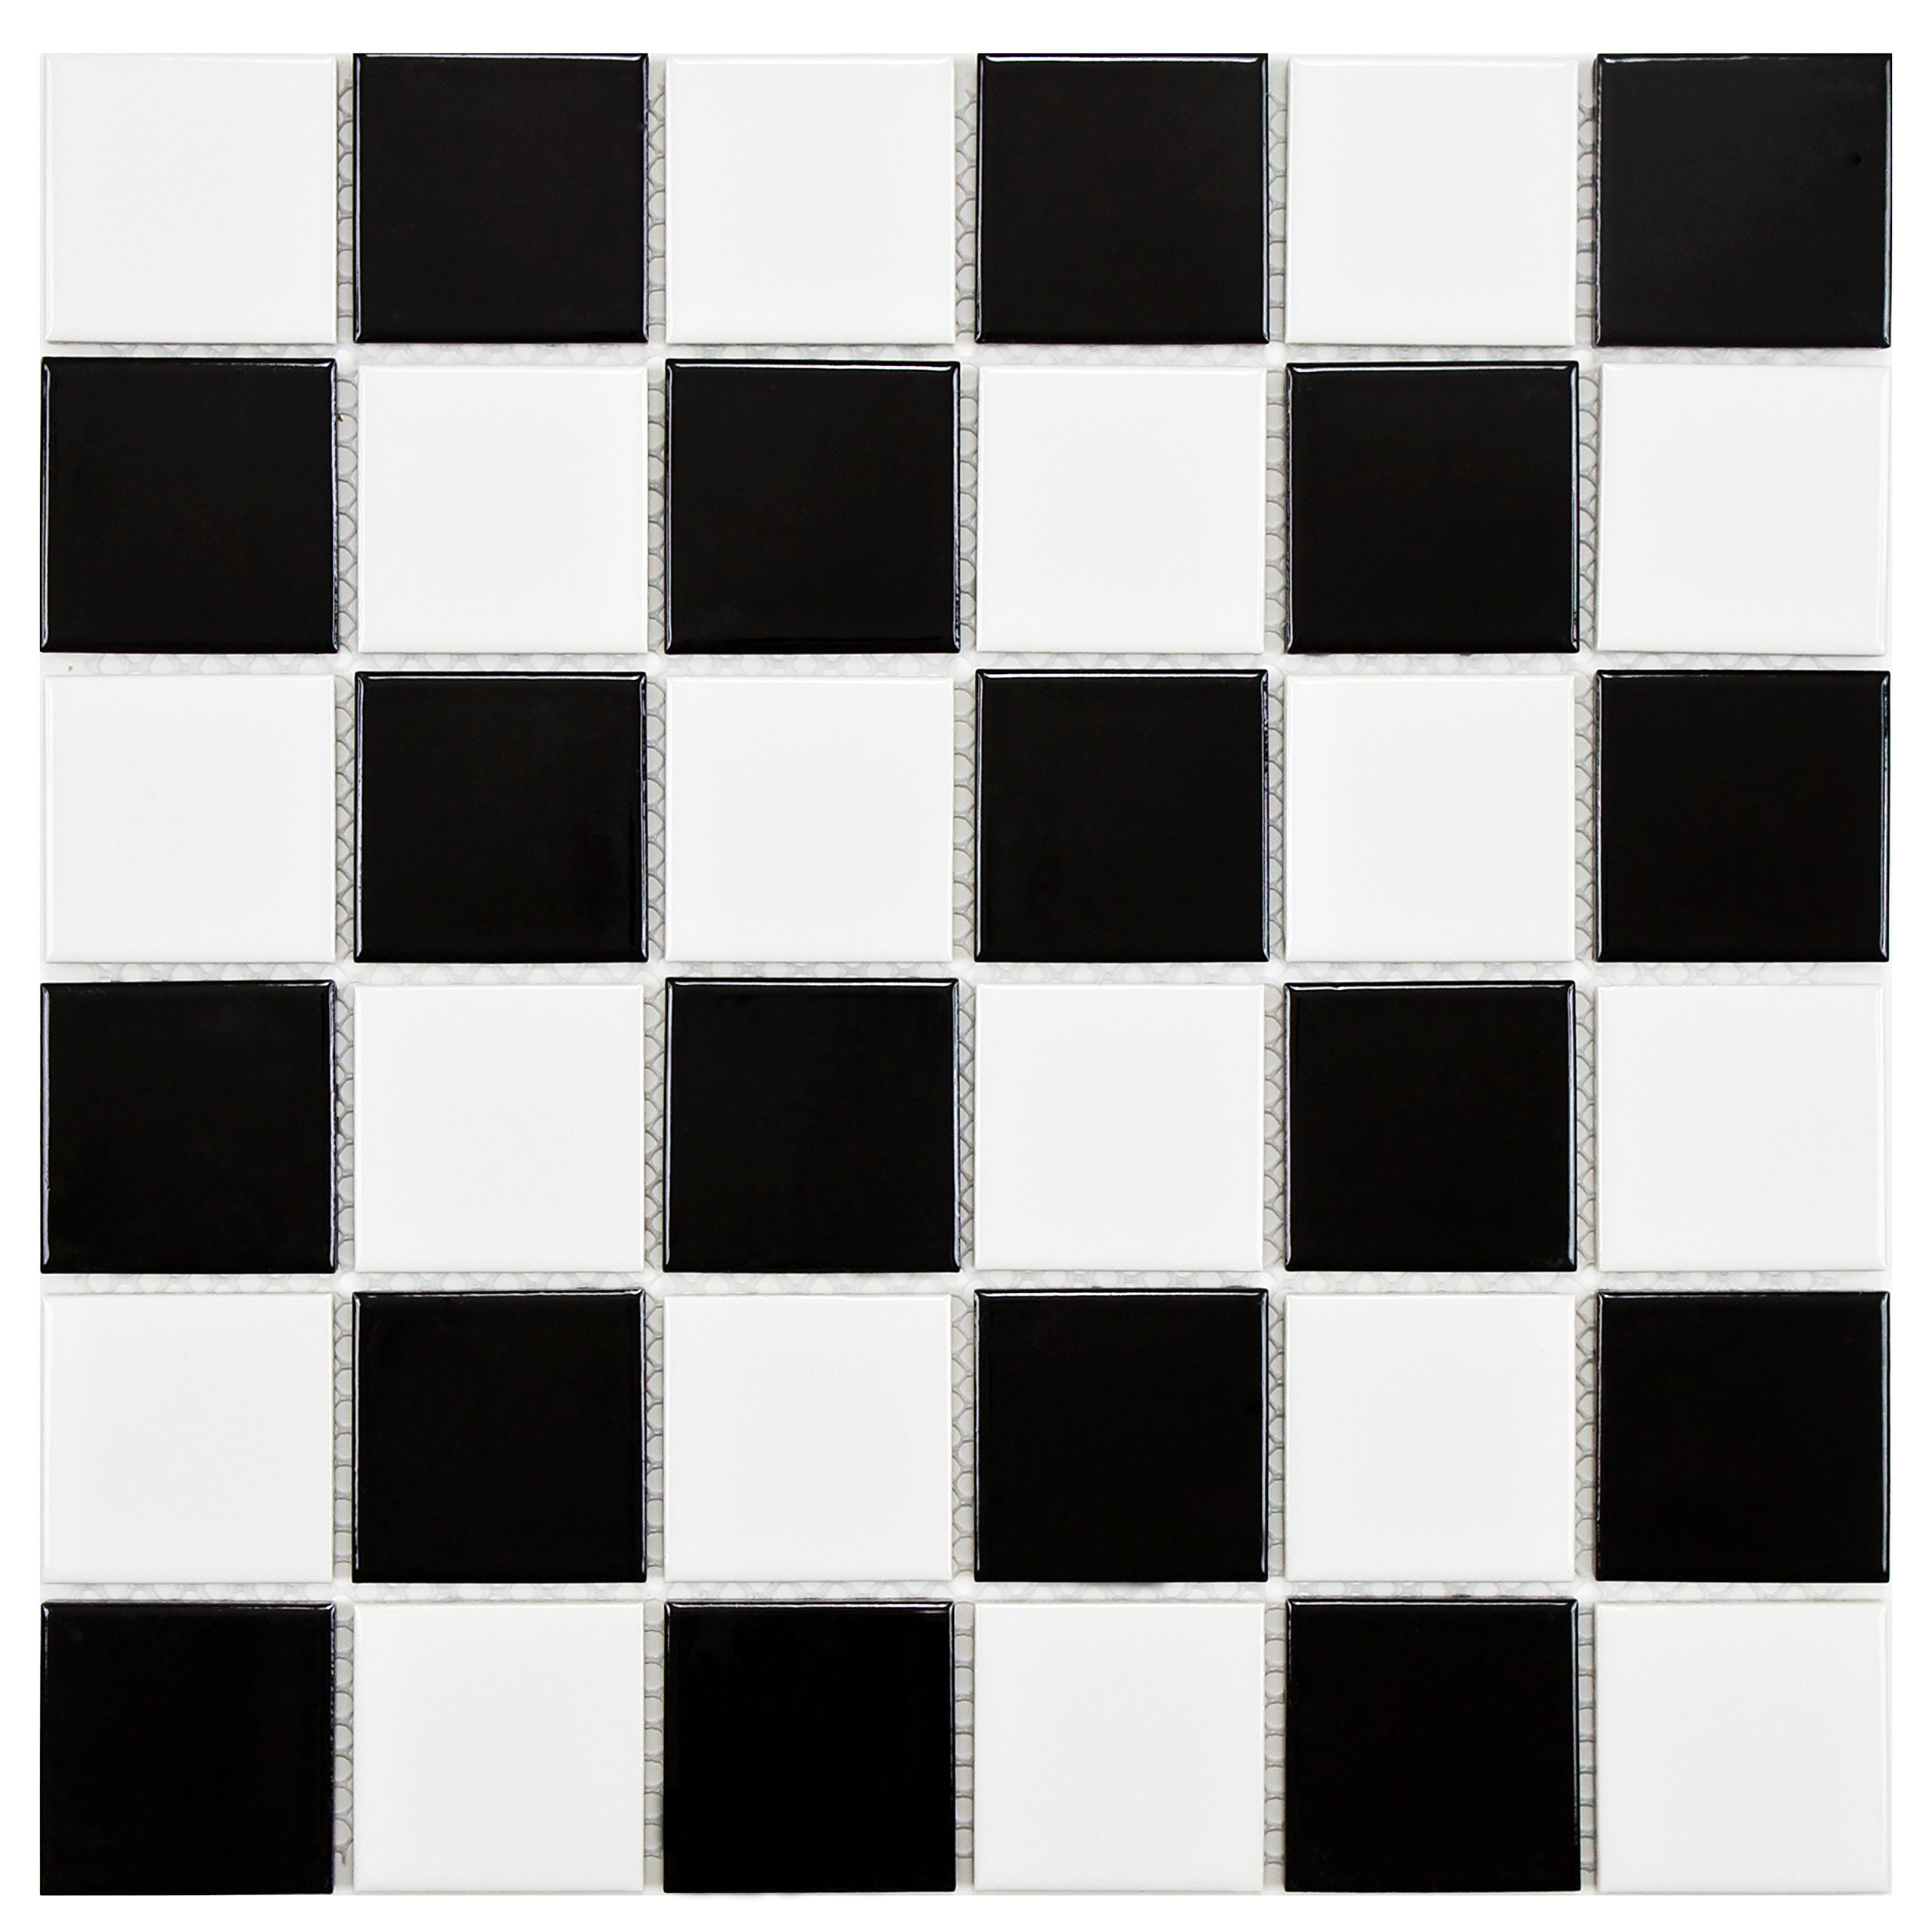 SomerTile FYFB2SCH Polar Square Checker Porcelain Floor and Wall Tile, 11.875'' x 11.875'', White/Black